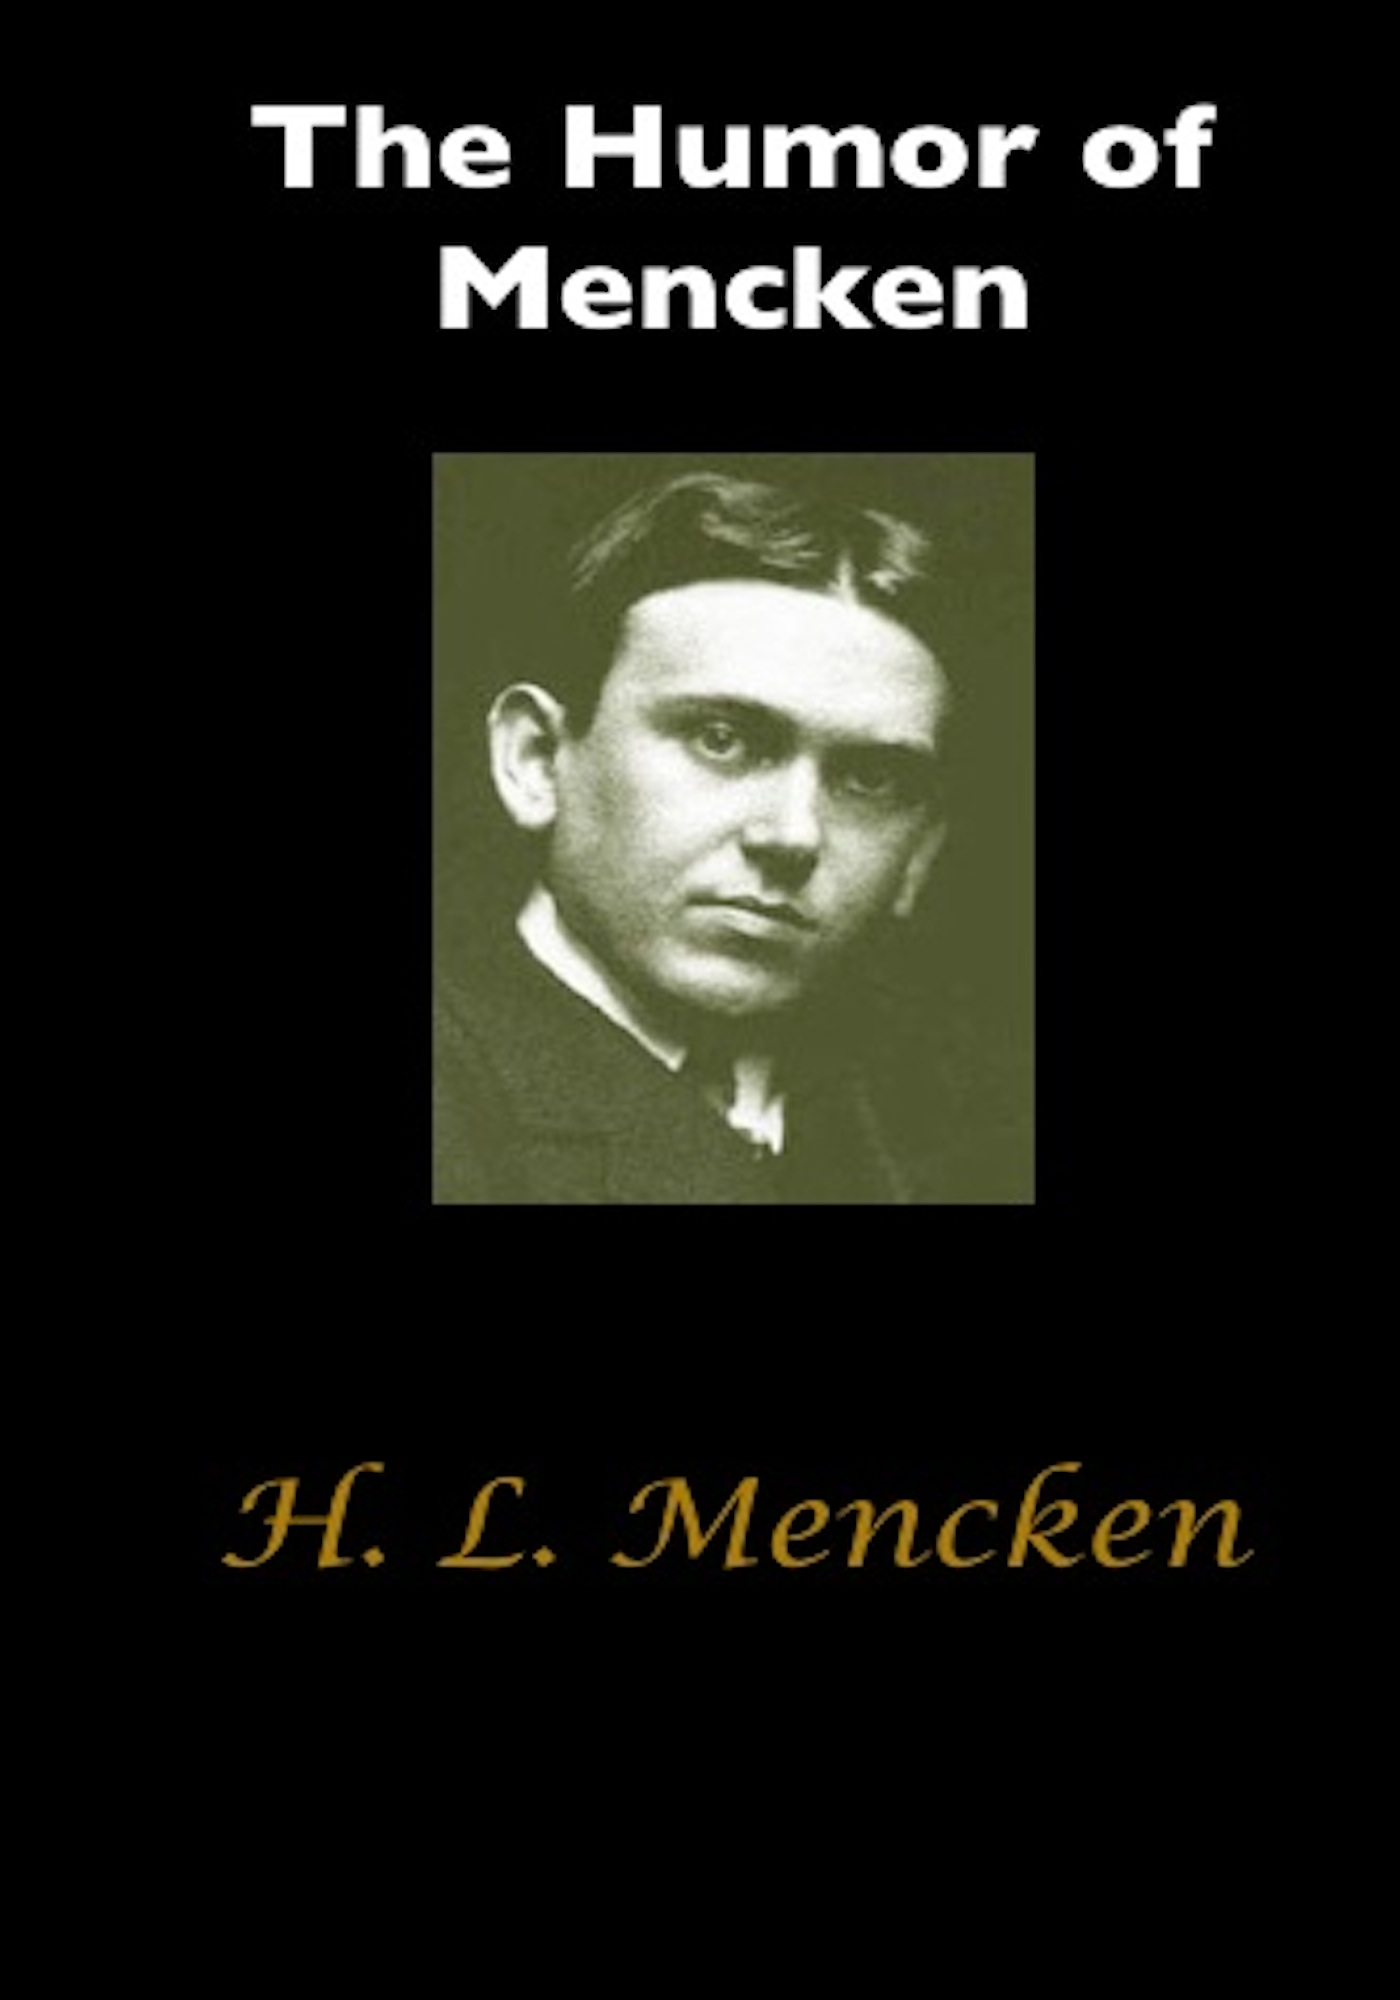 The Humor of Mencken